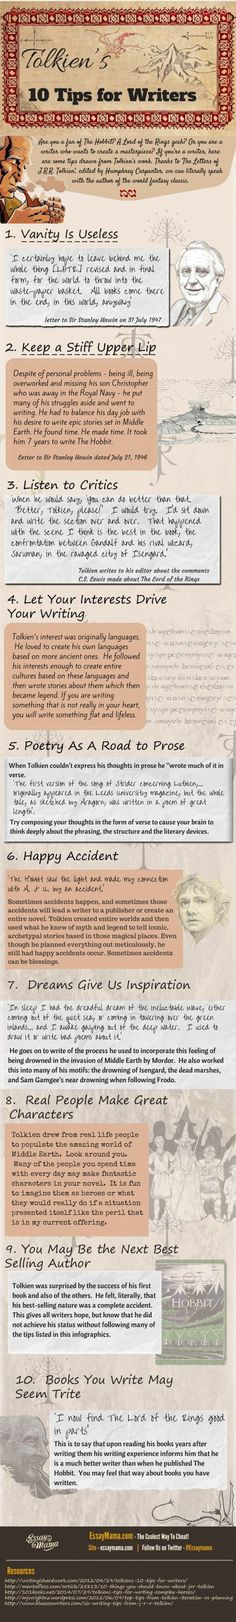 J. R. R. Tolkien's 10 Tips For Writers